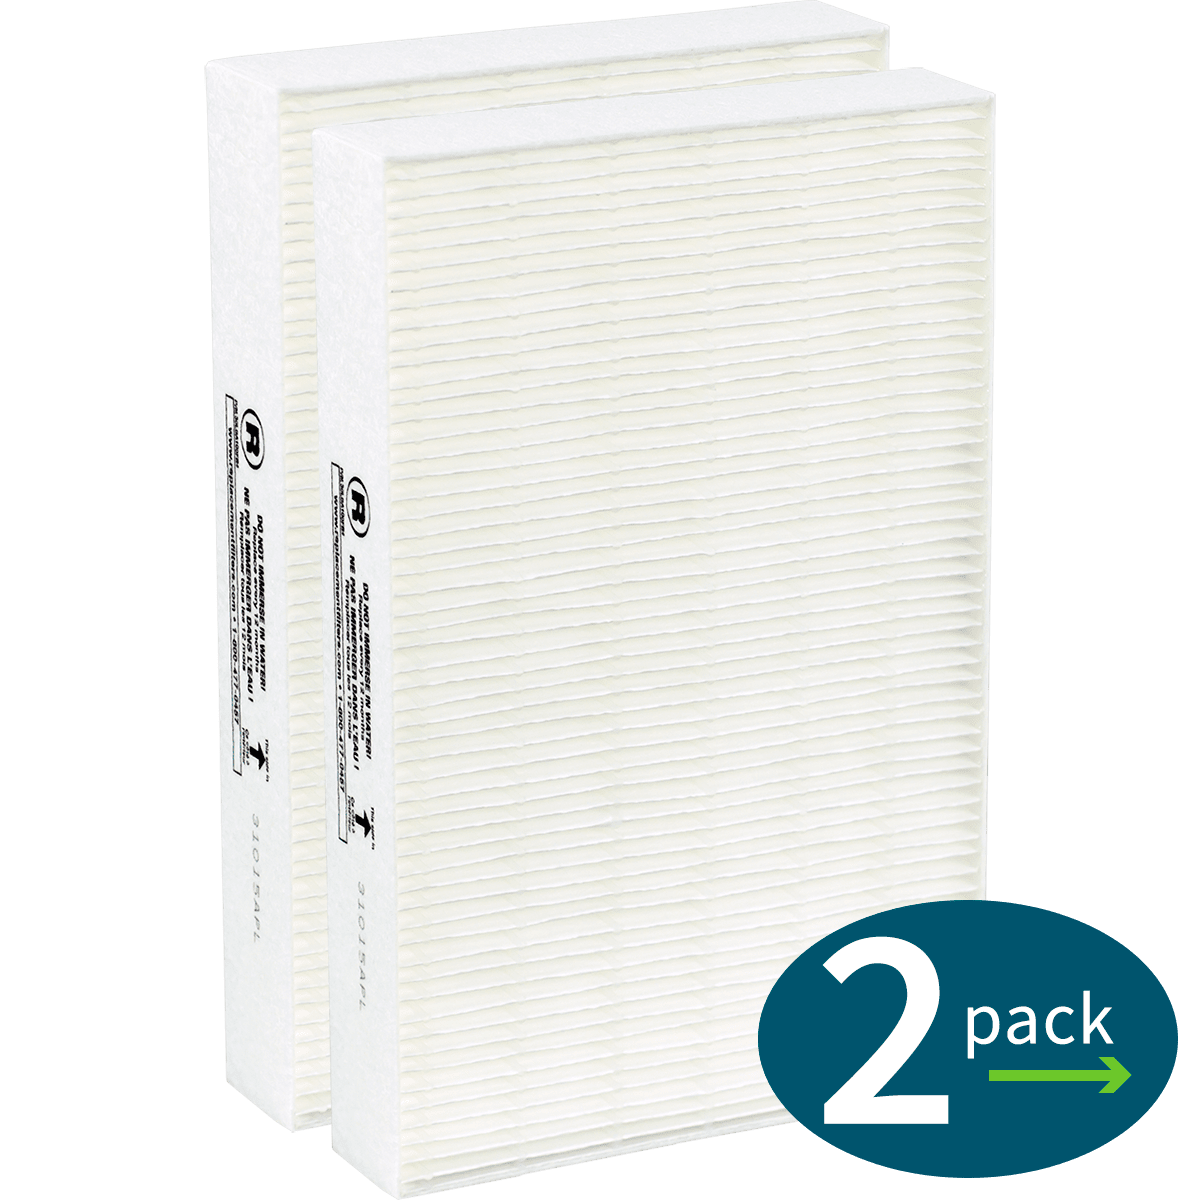 Honeywell True HEPA Replacement Filter R ho4070